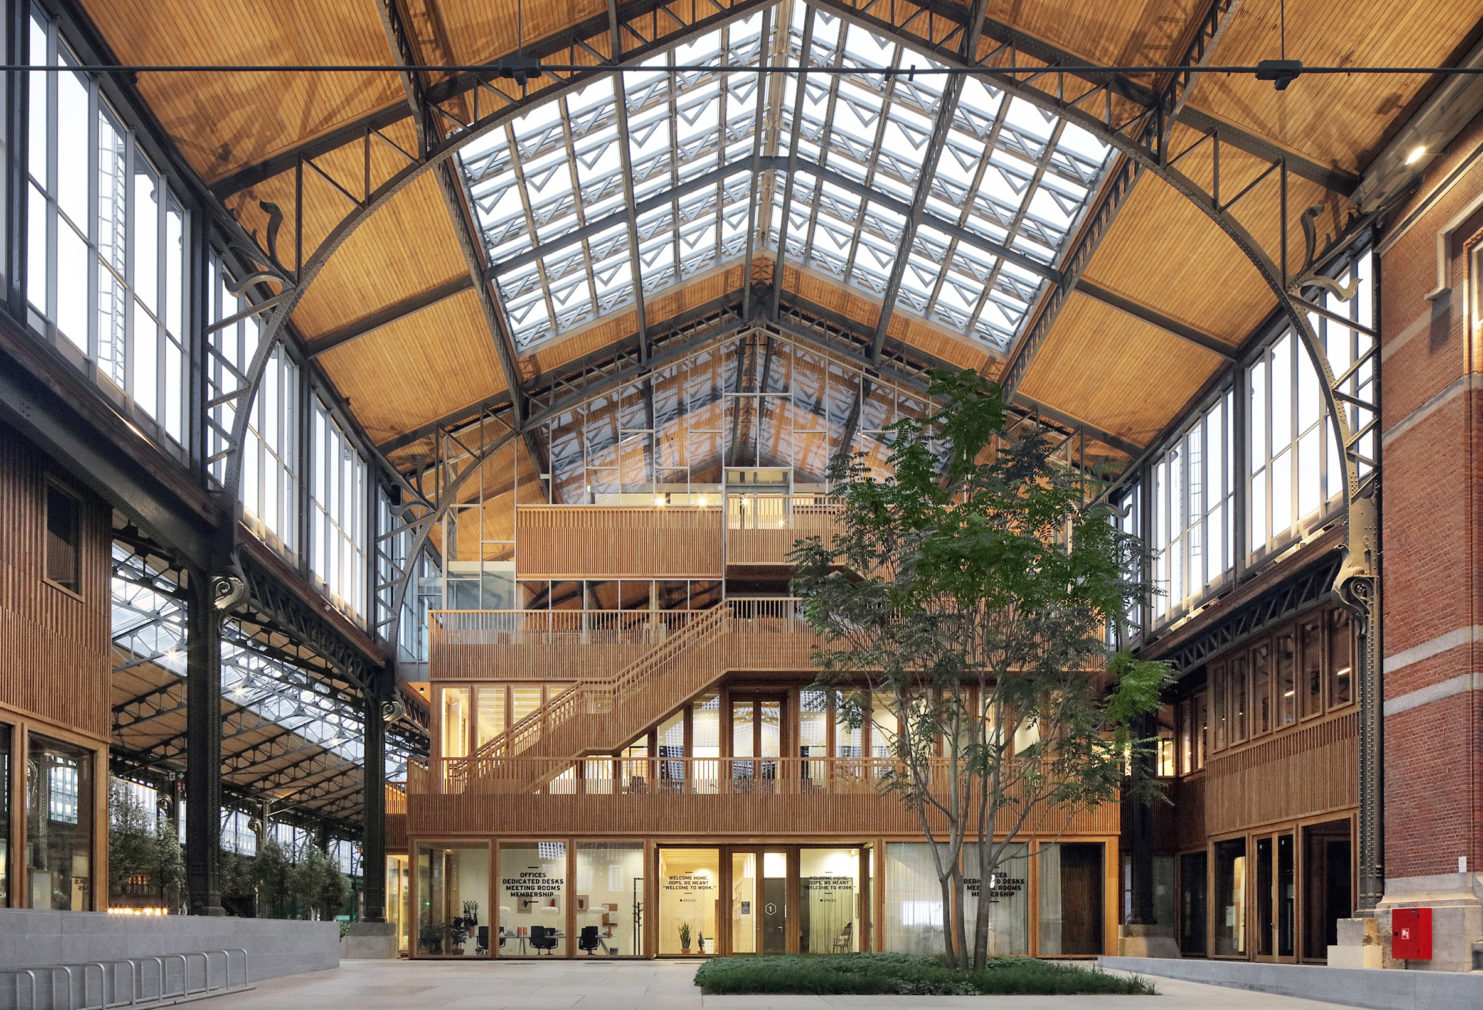 Brussels' 113-year-old Gare Maritime terminus is revived as a new neighbourhood hub